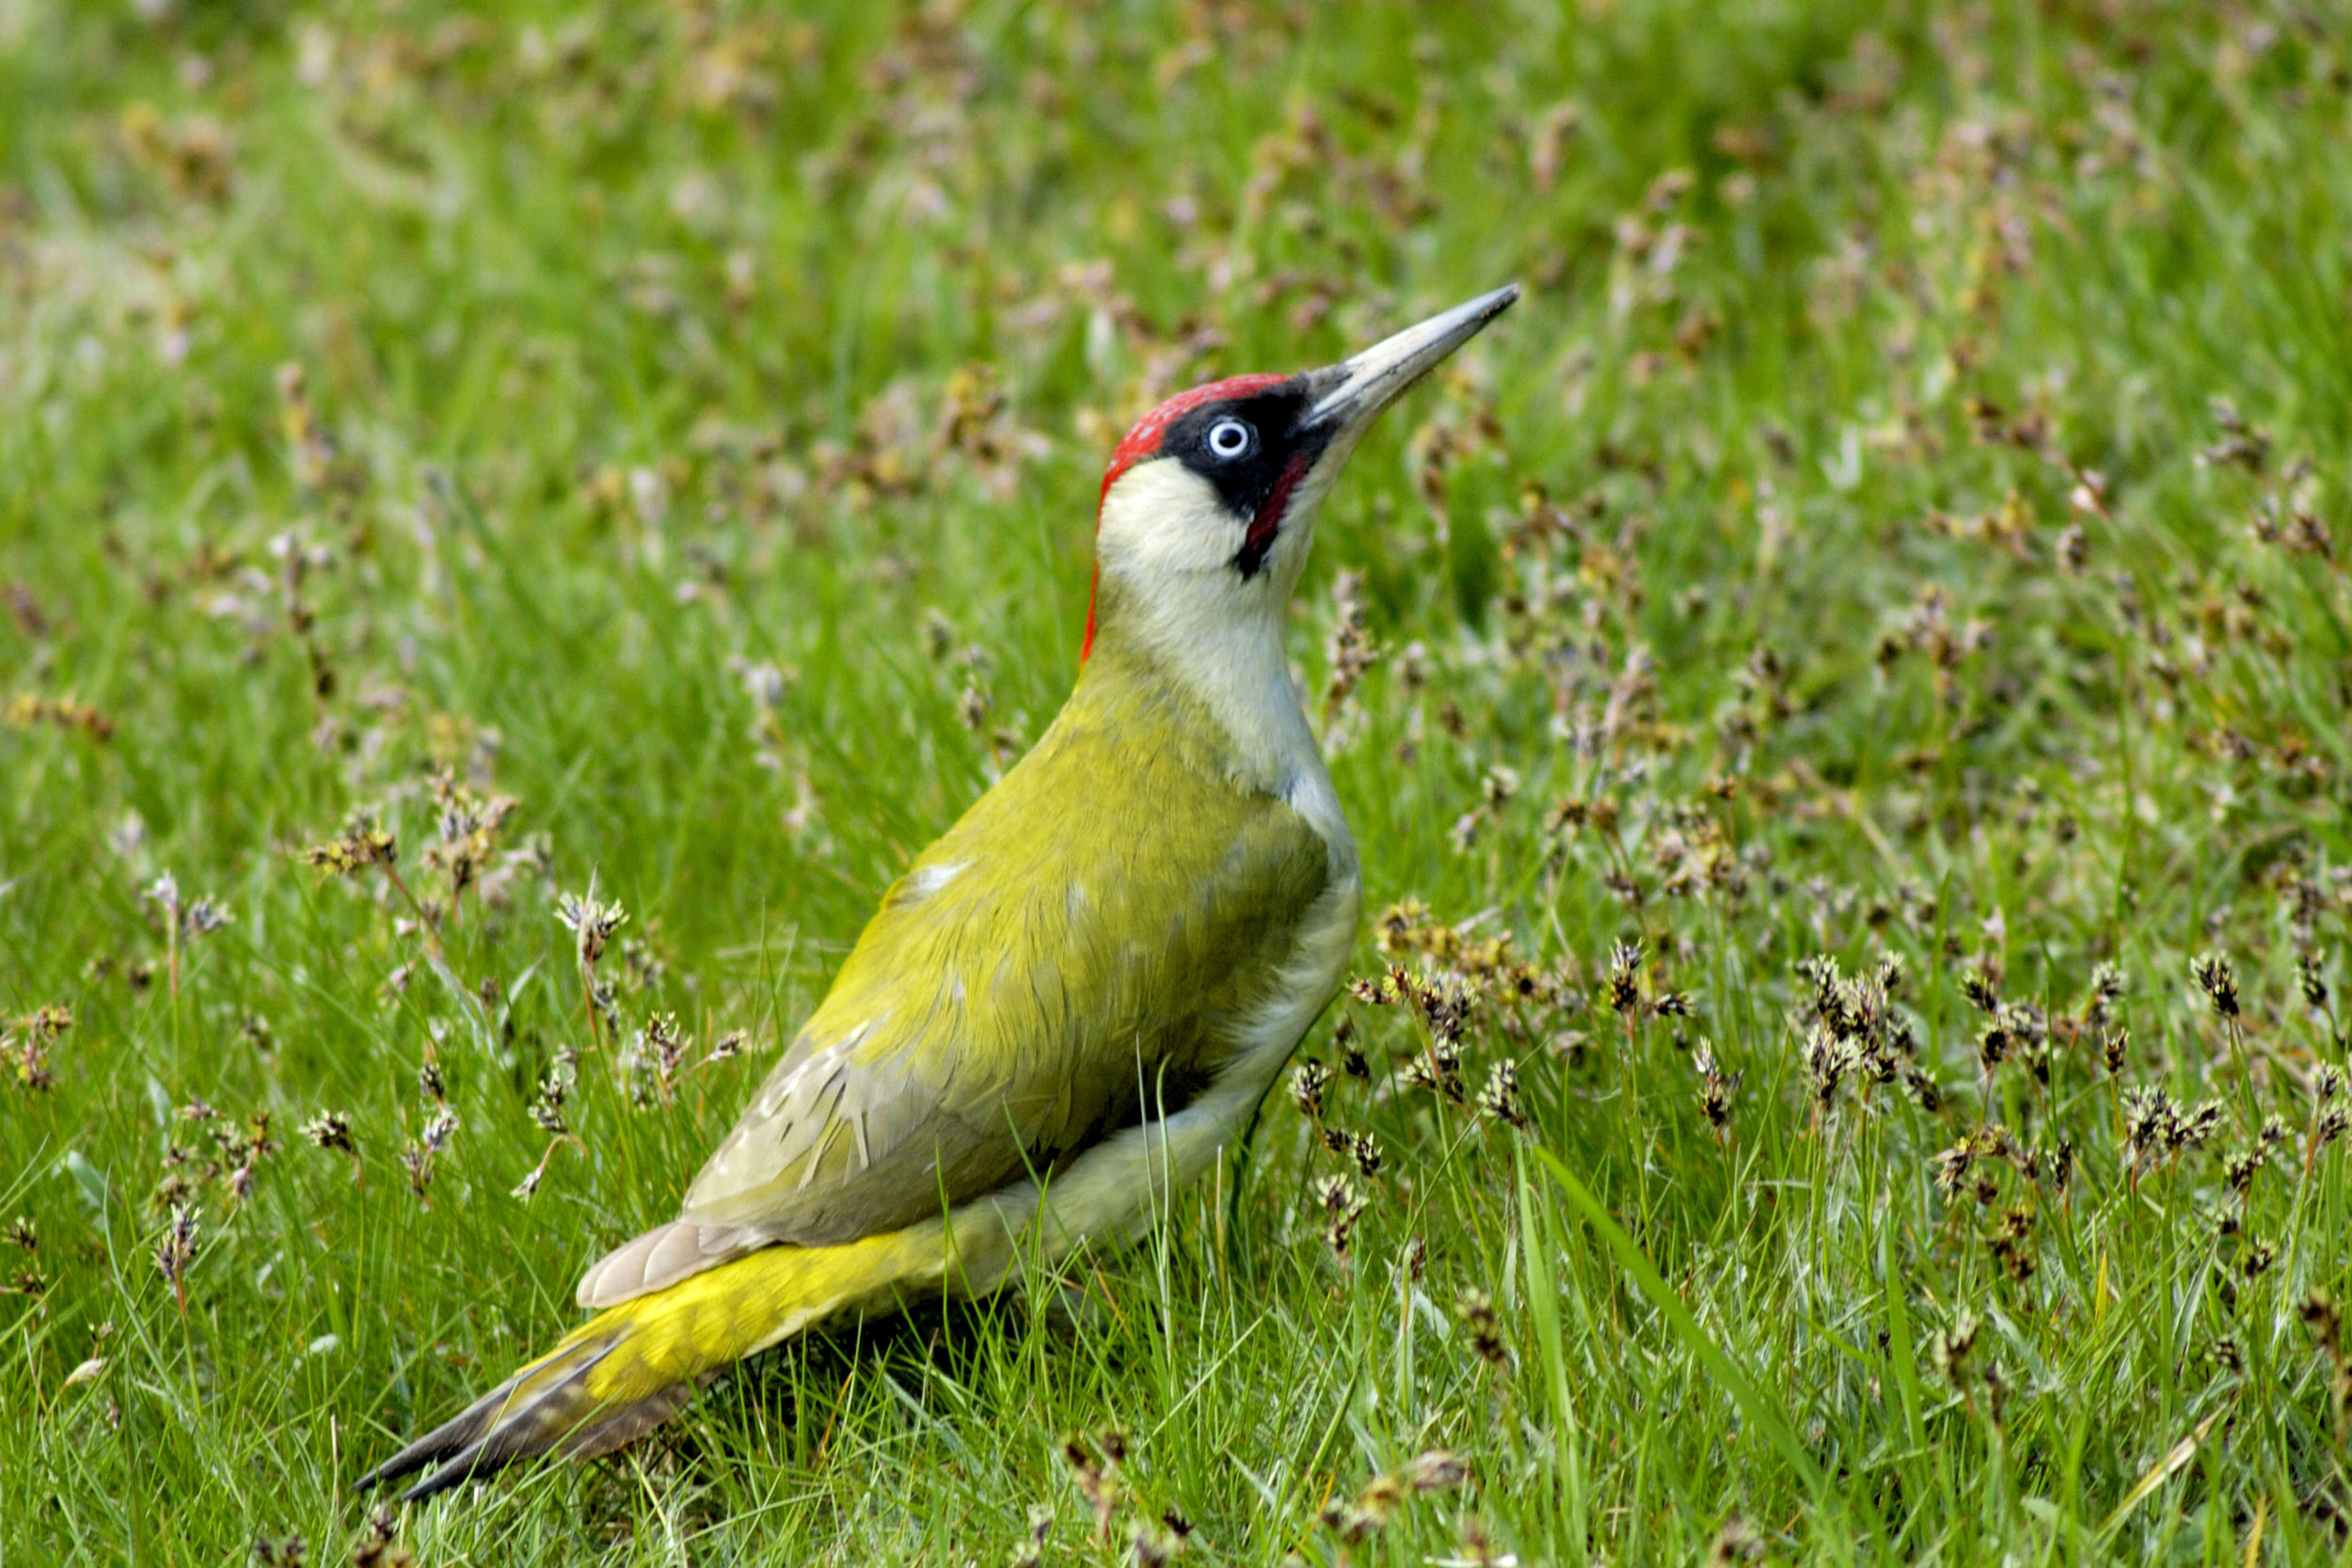 Green Woodpecker feeding on the ground. Note this is an adult male, as told by the red in the 'moustache' (females have a black 'moustache')